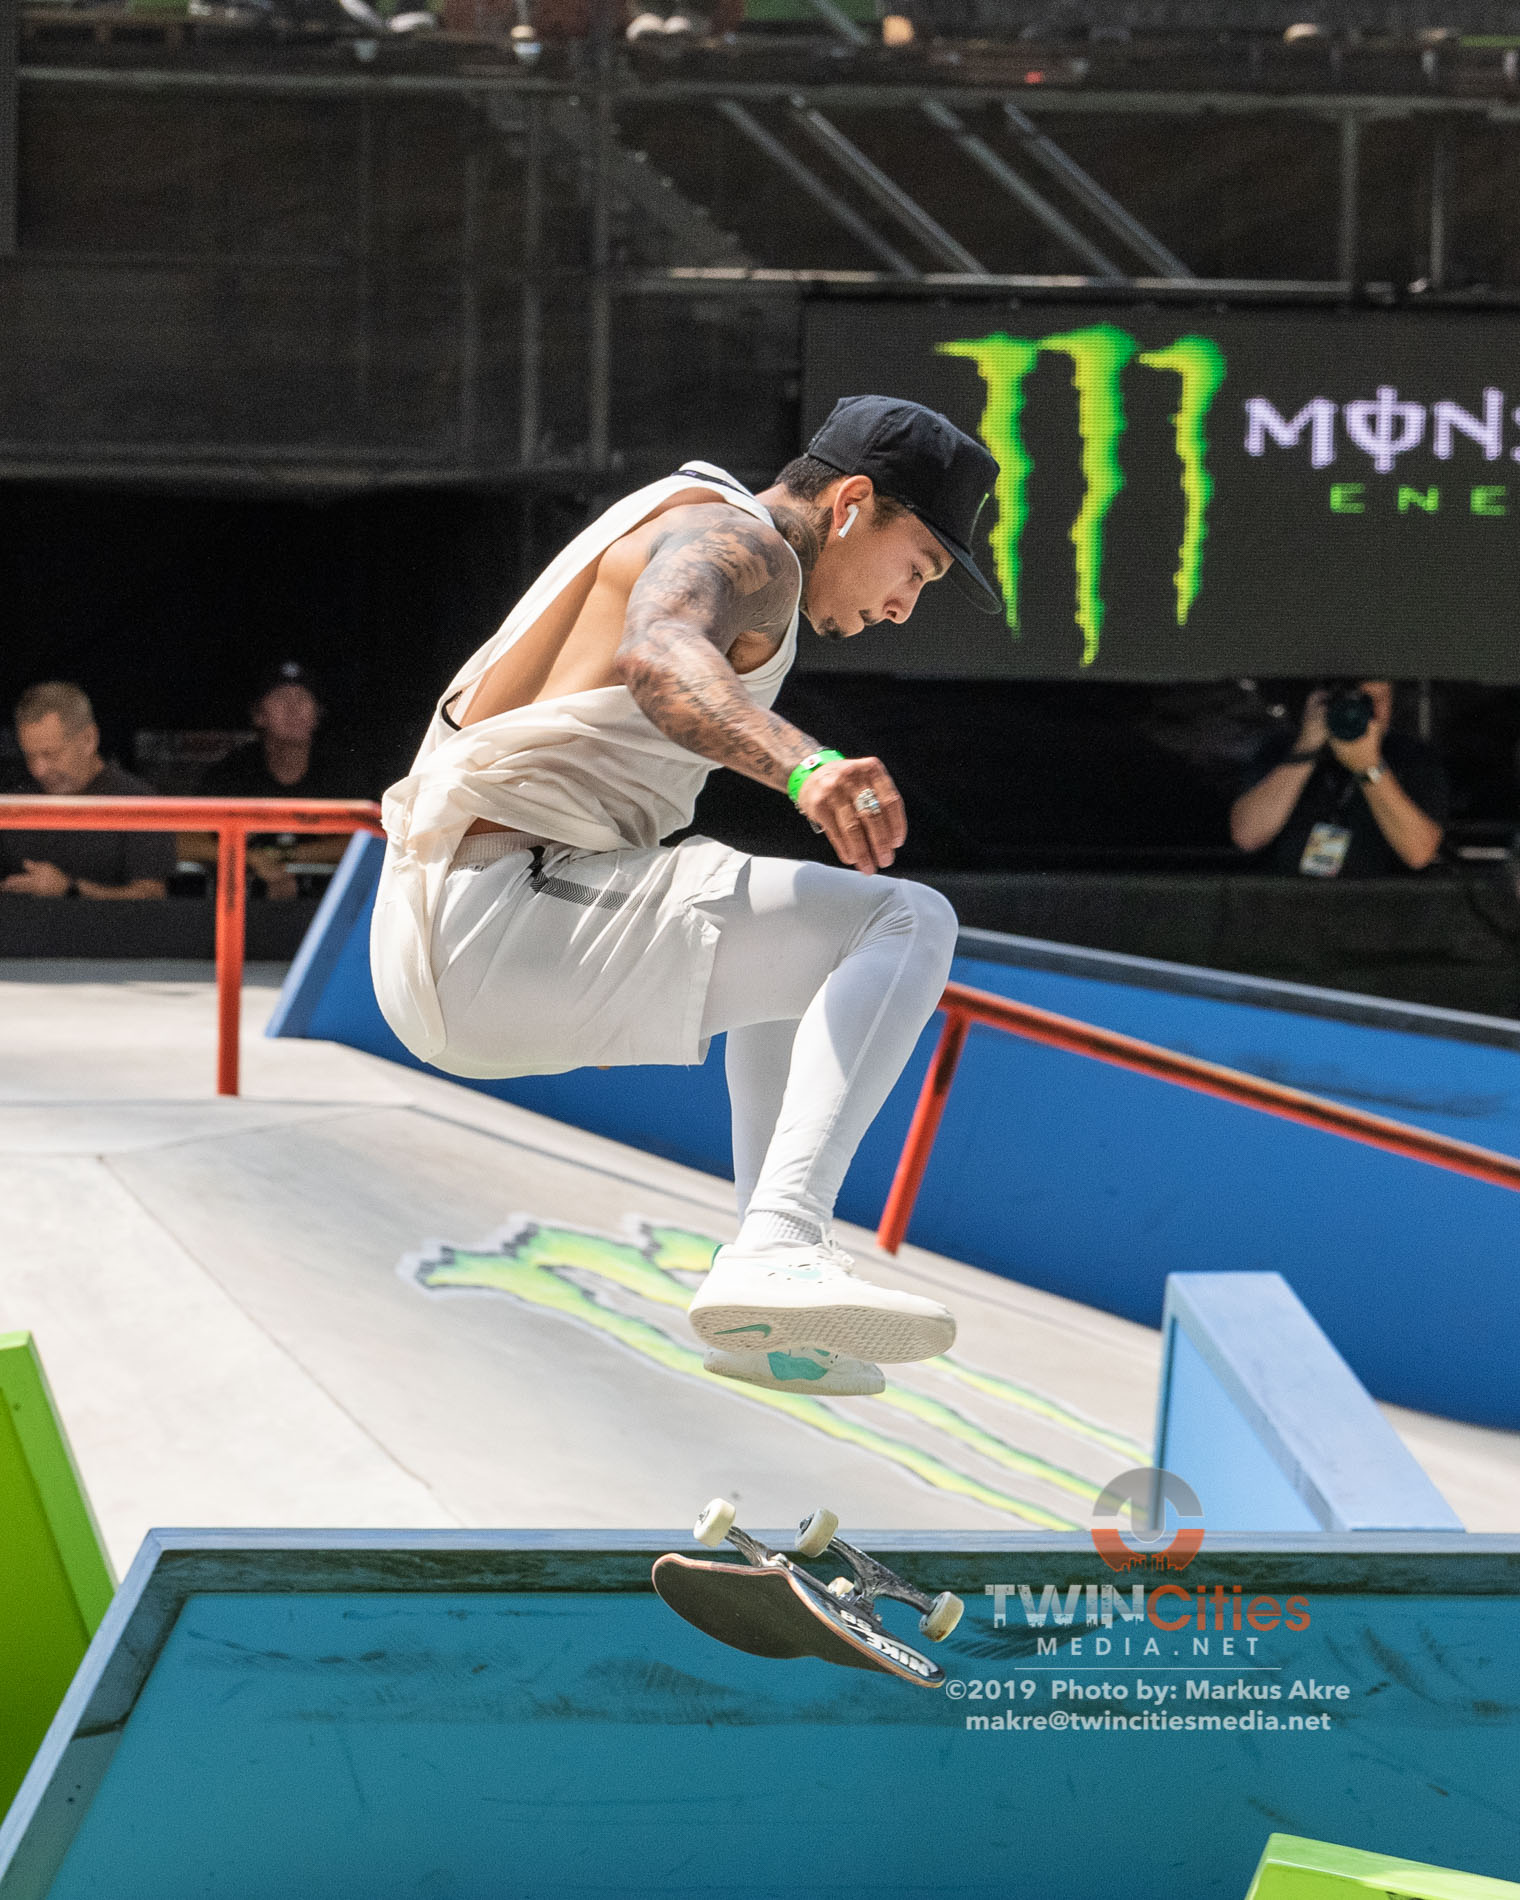 2019-X-Games-Day-4-Skateboard-Street-Best-Trick-1